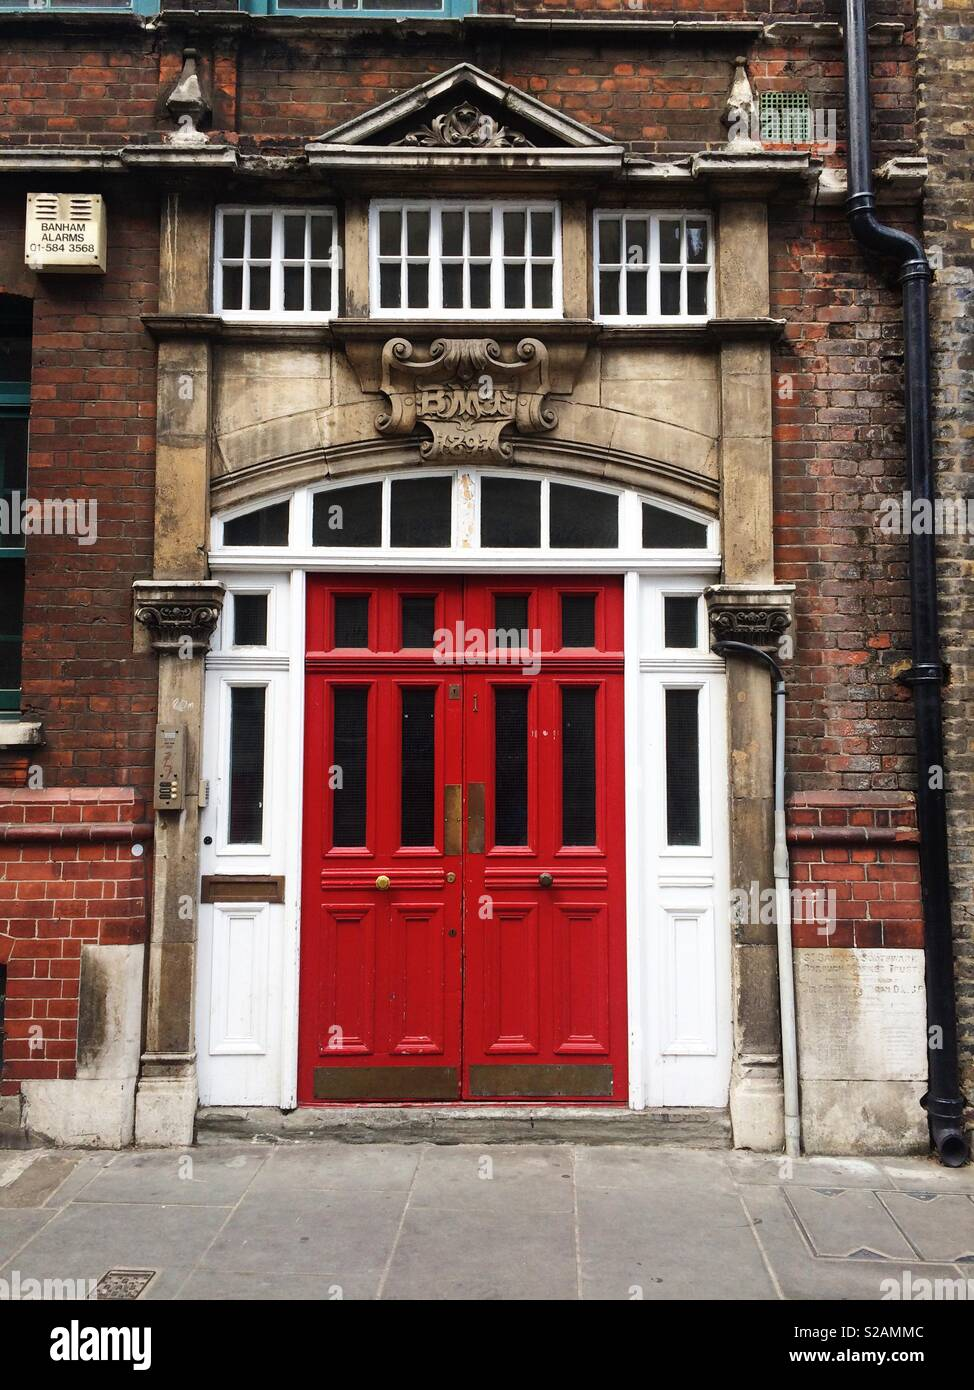 Red doors on an old brick building - Stock Image